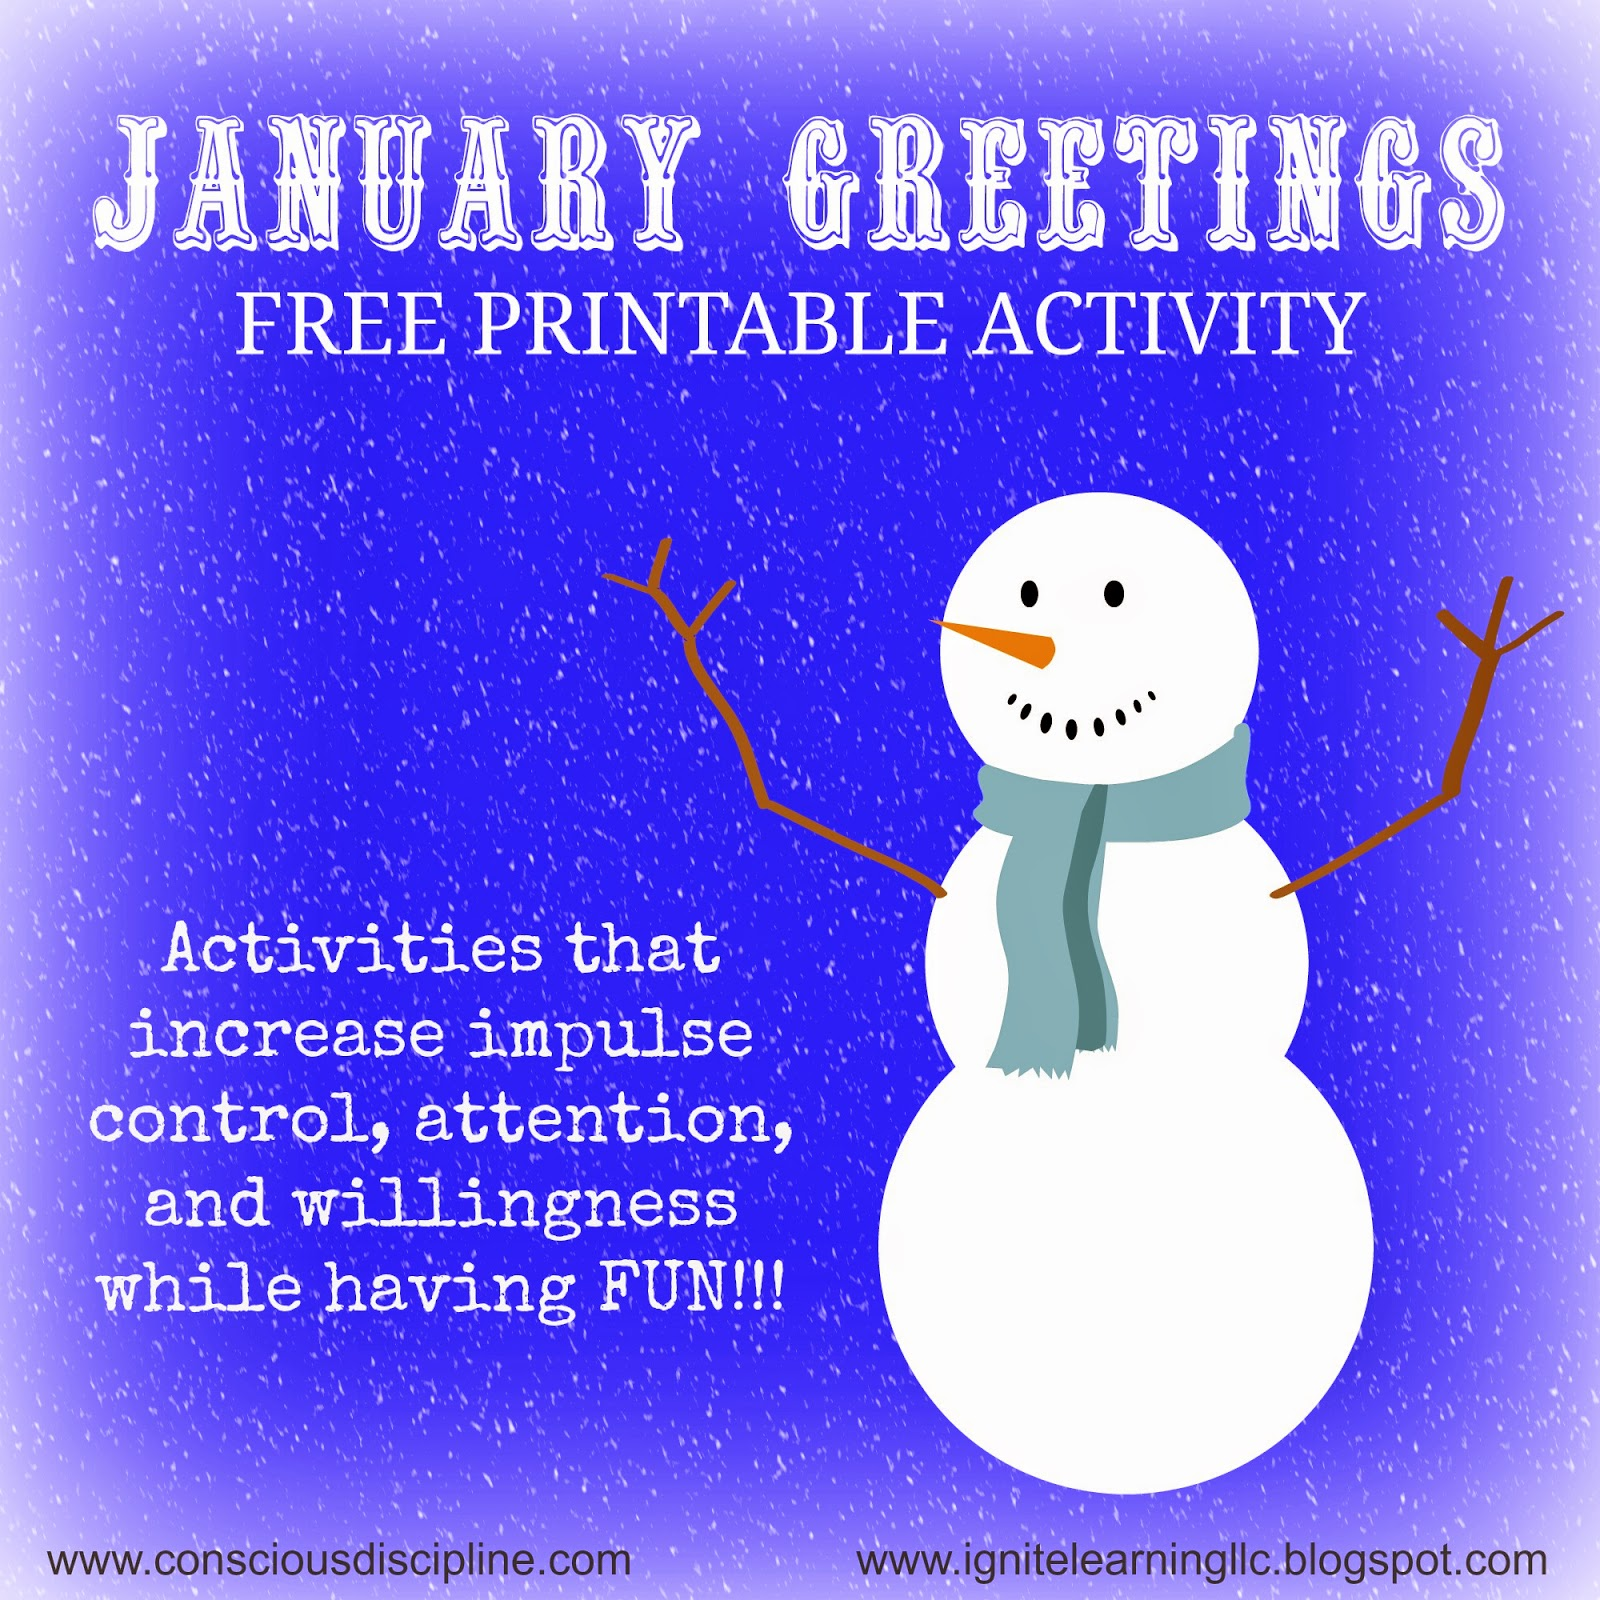 Prekandksharingspot free printable for fun january greetings tomorrow is the big day kristyandbryce Image collections